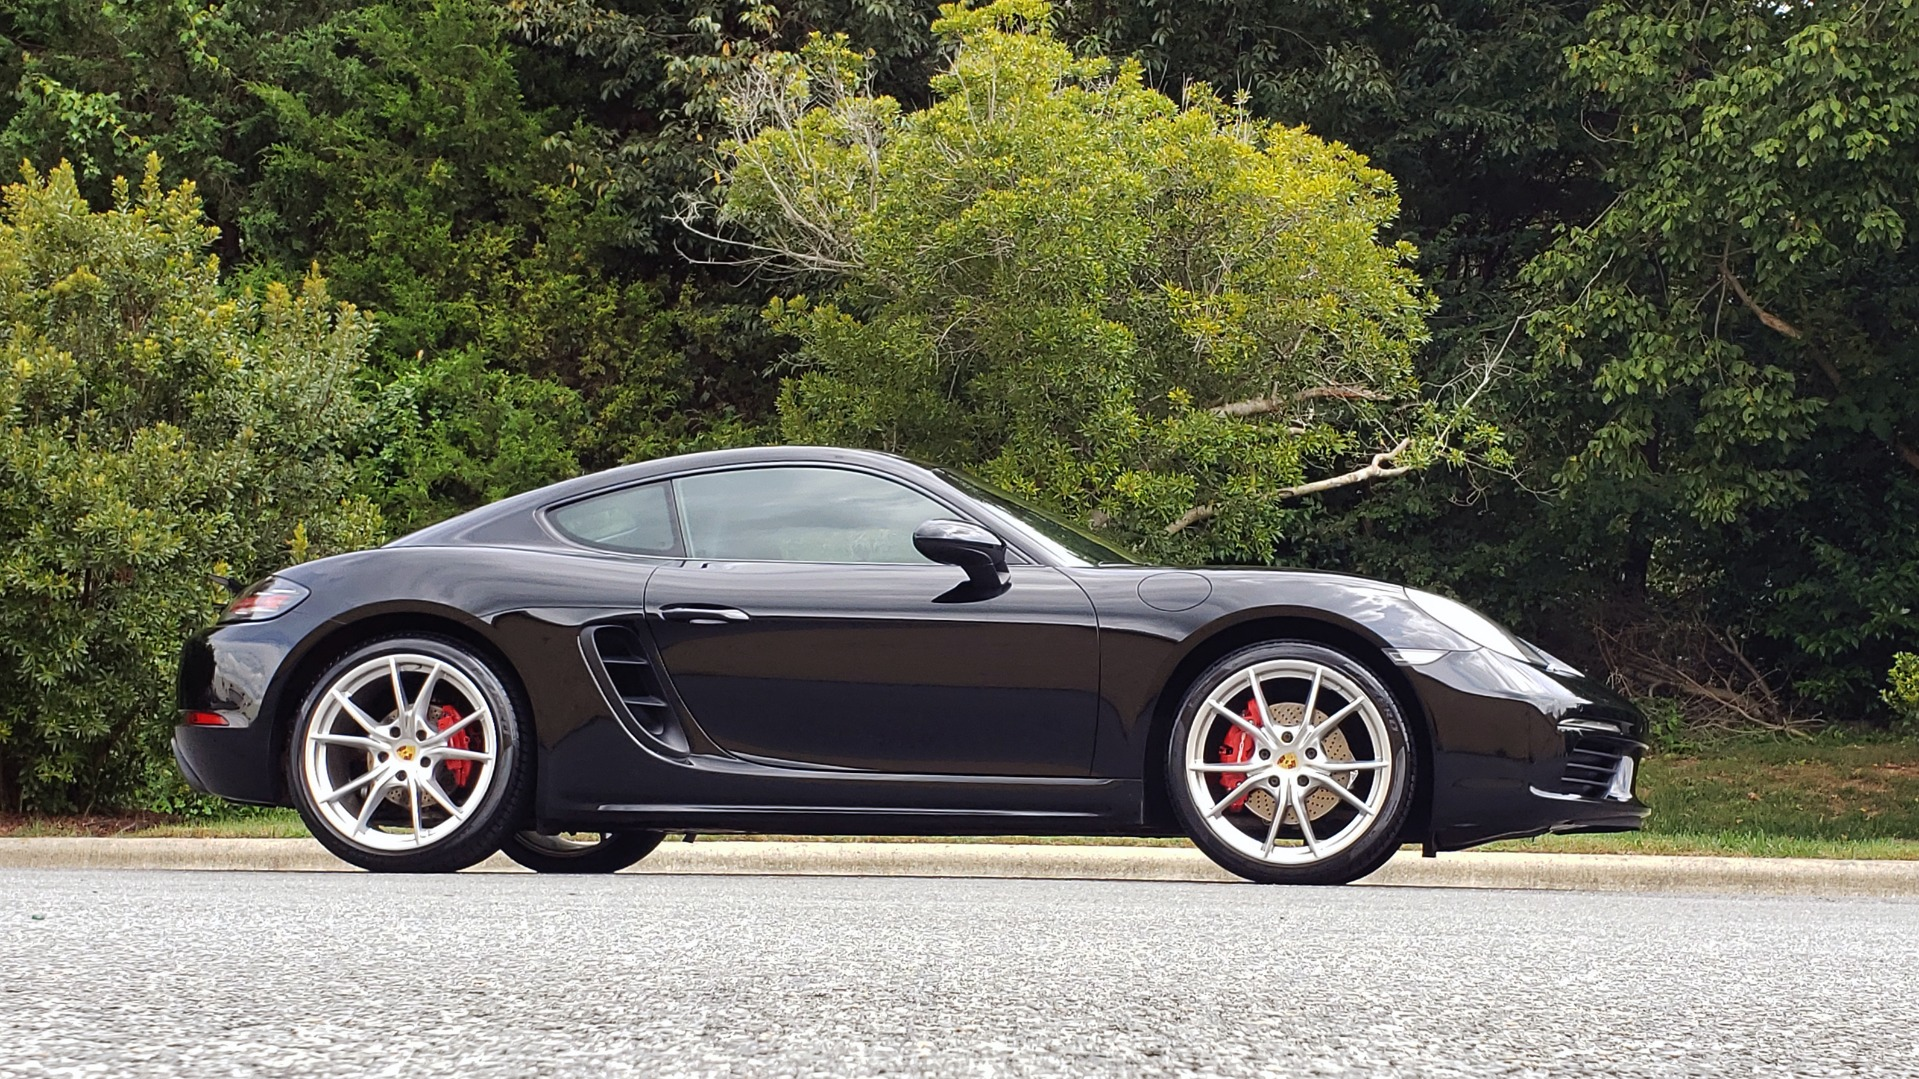 Used 2018 Porsche 718 CAYMAN S / PREM PKG PLUS / PDK / NAV / BOSE / CHRONO / SPORT EXHAUST for sale Sold at Formula Imports in Charlotte NC 28227 5